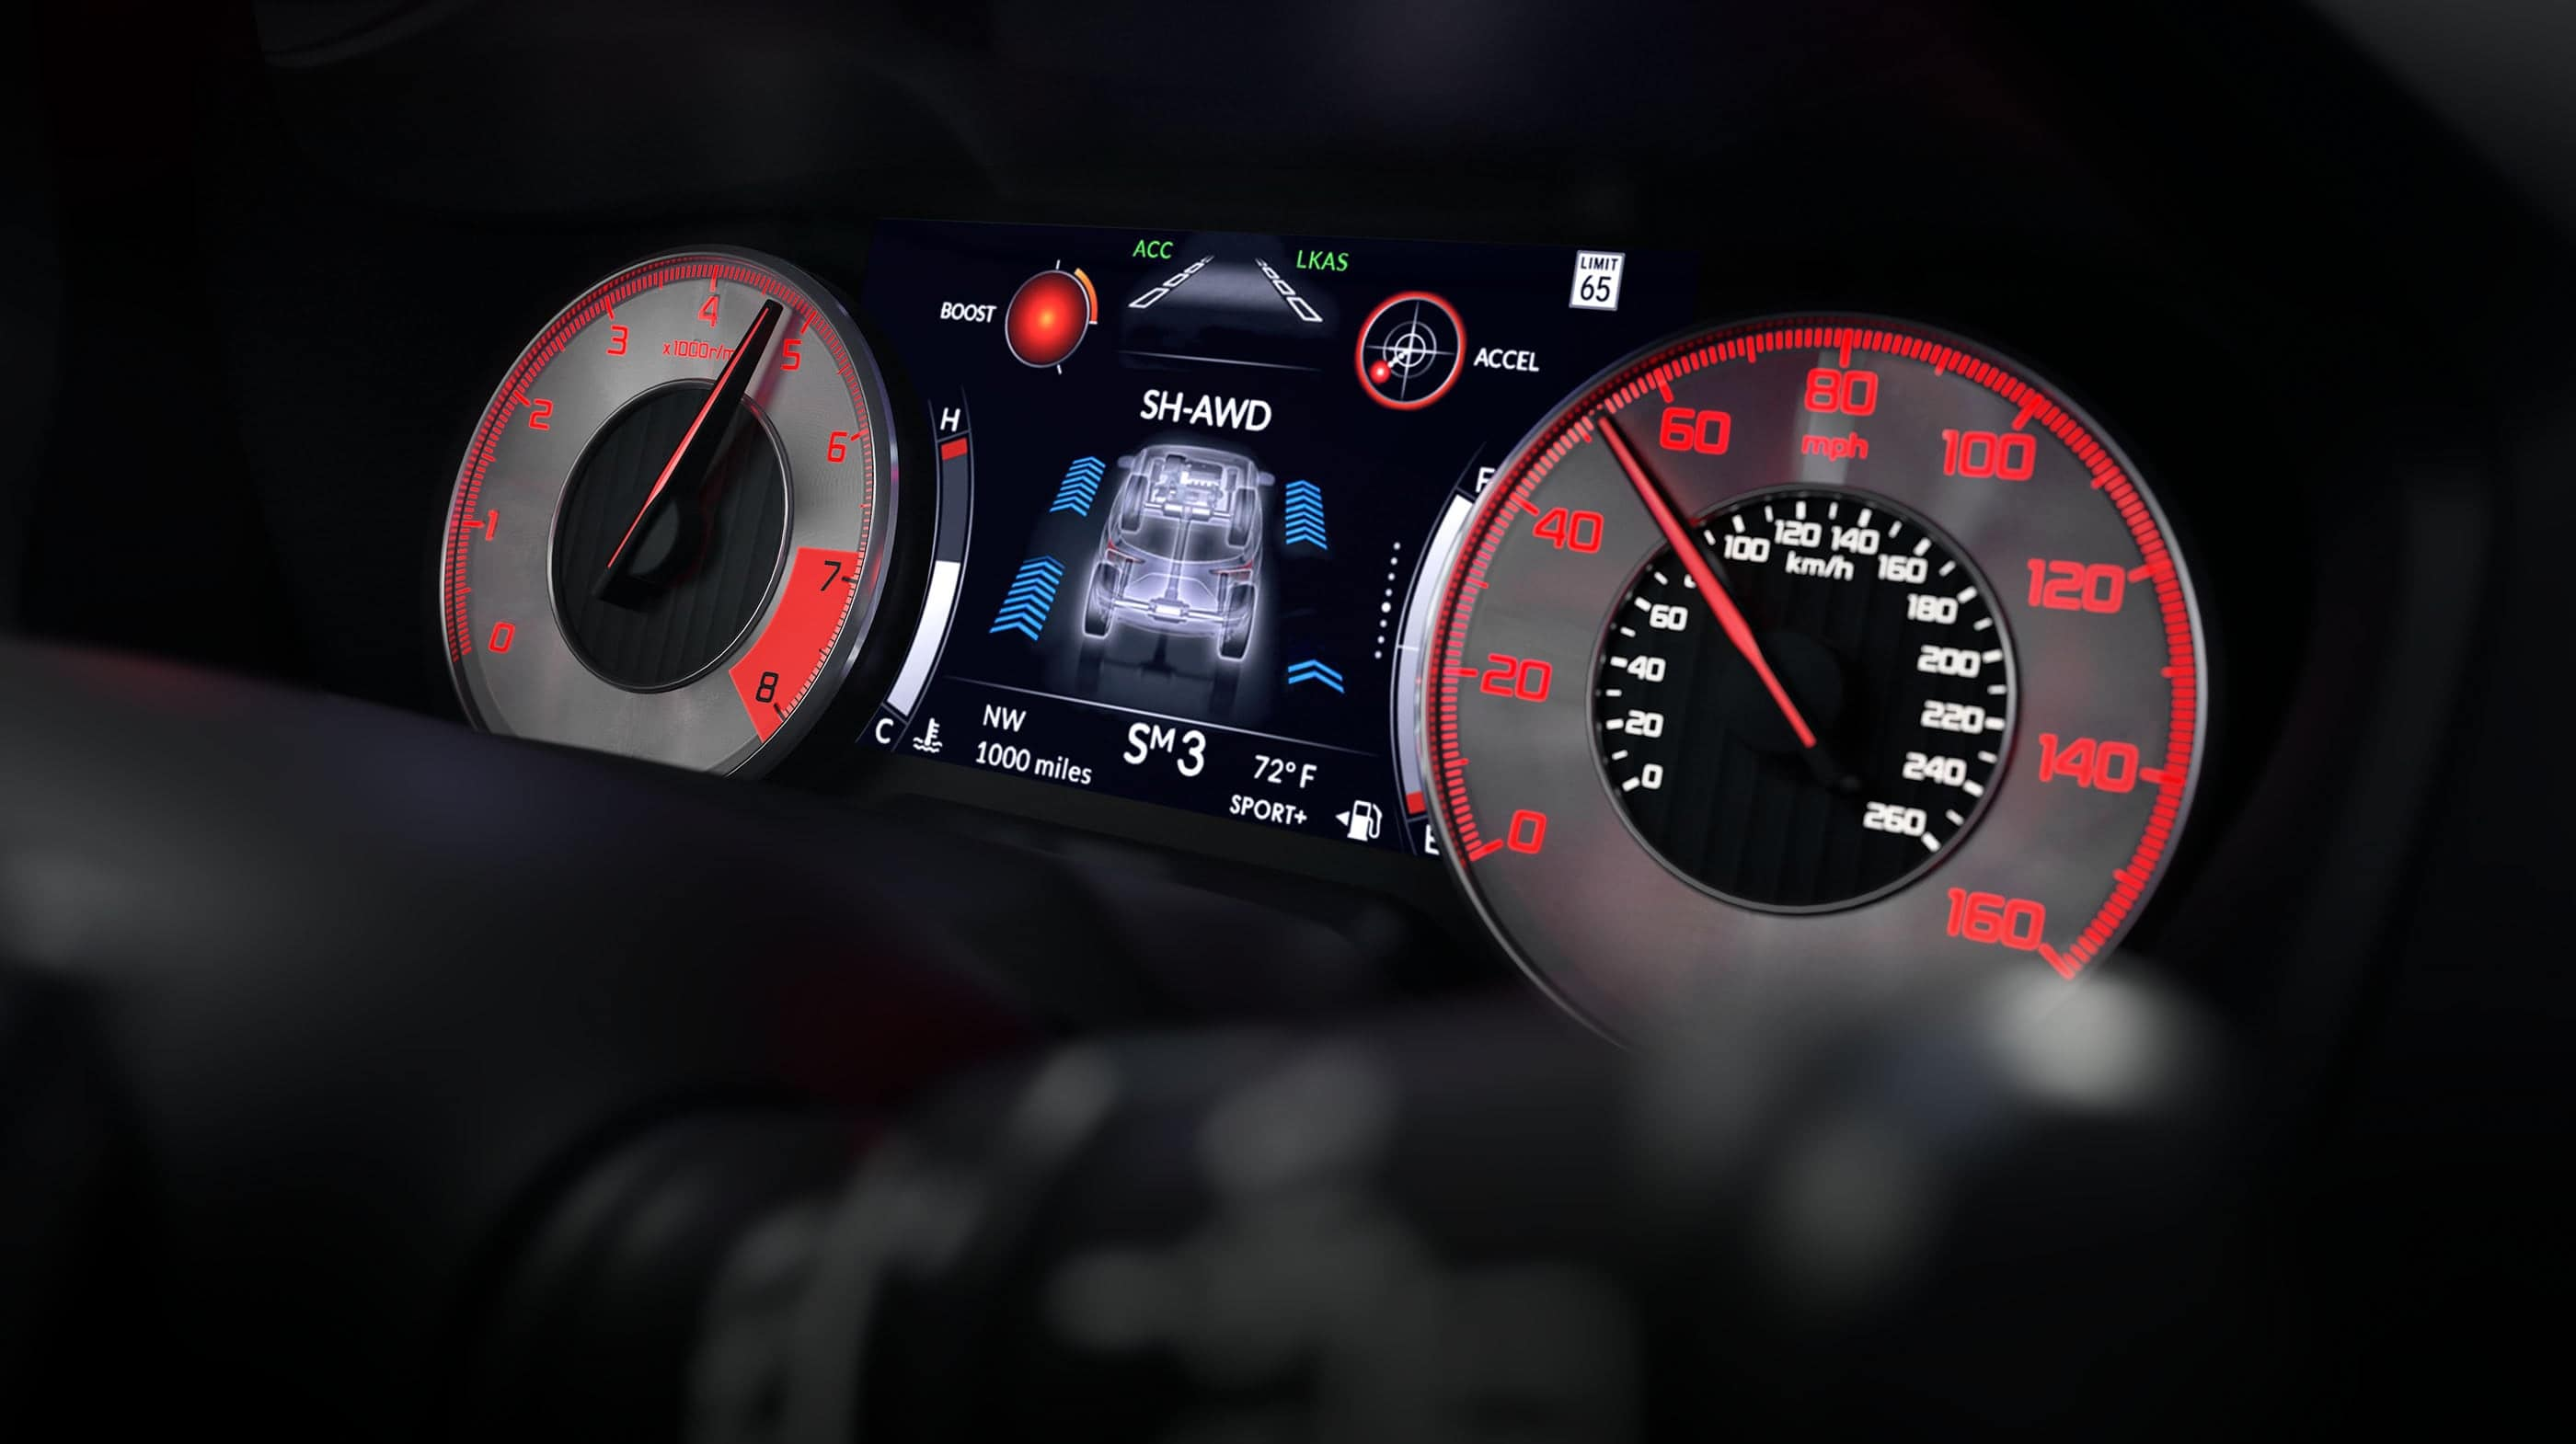 Instrument Panel of the 2020 RDX